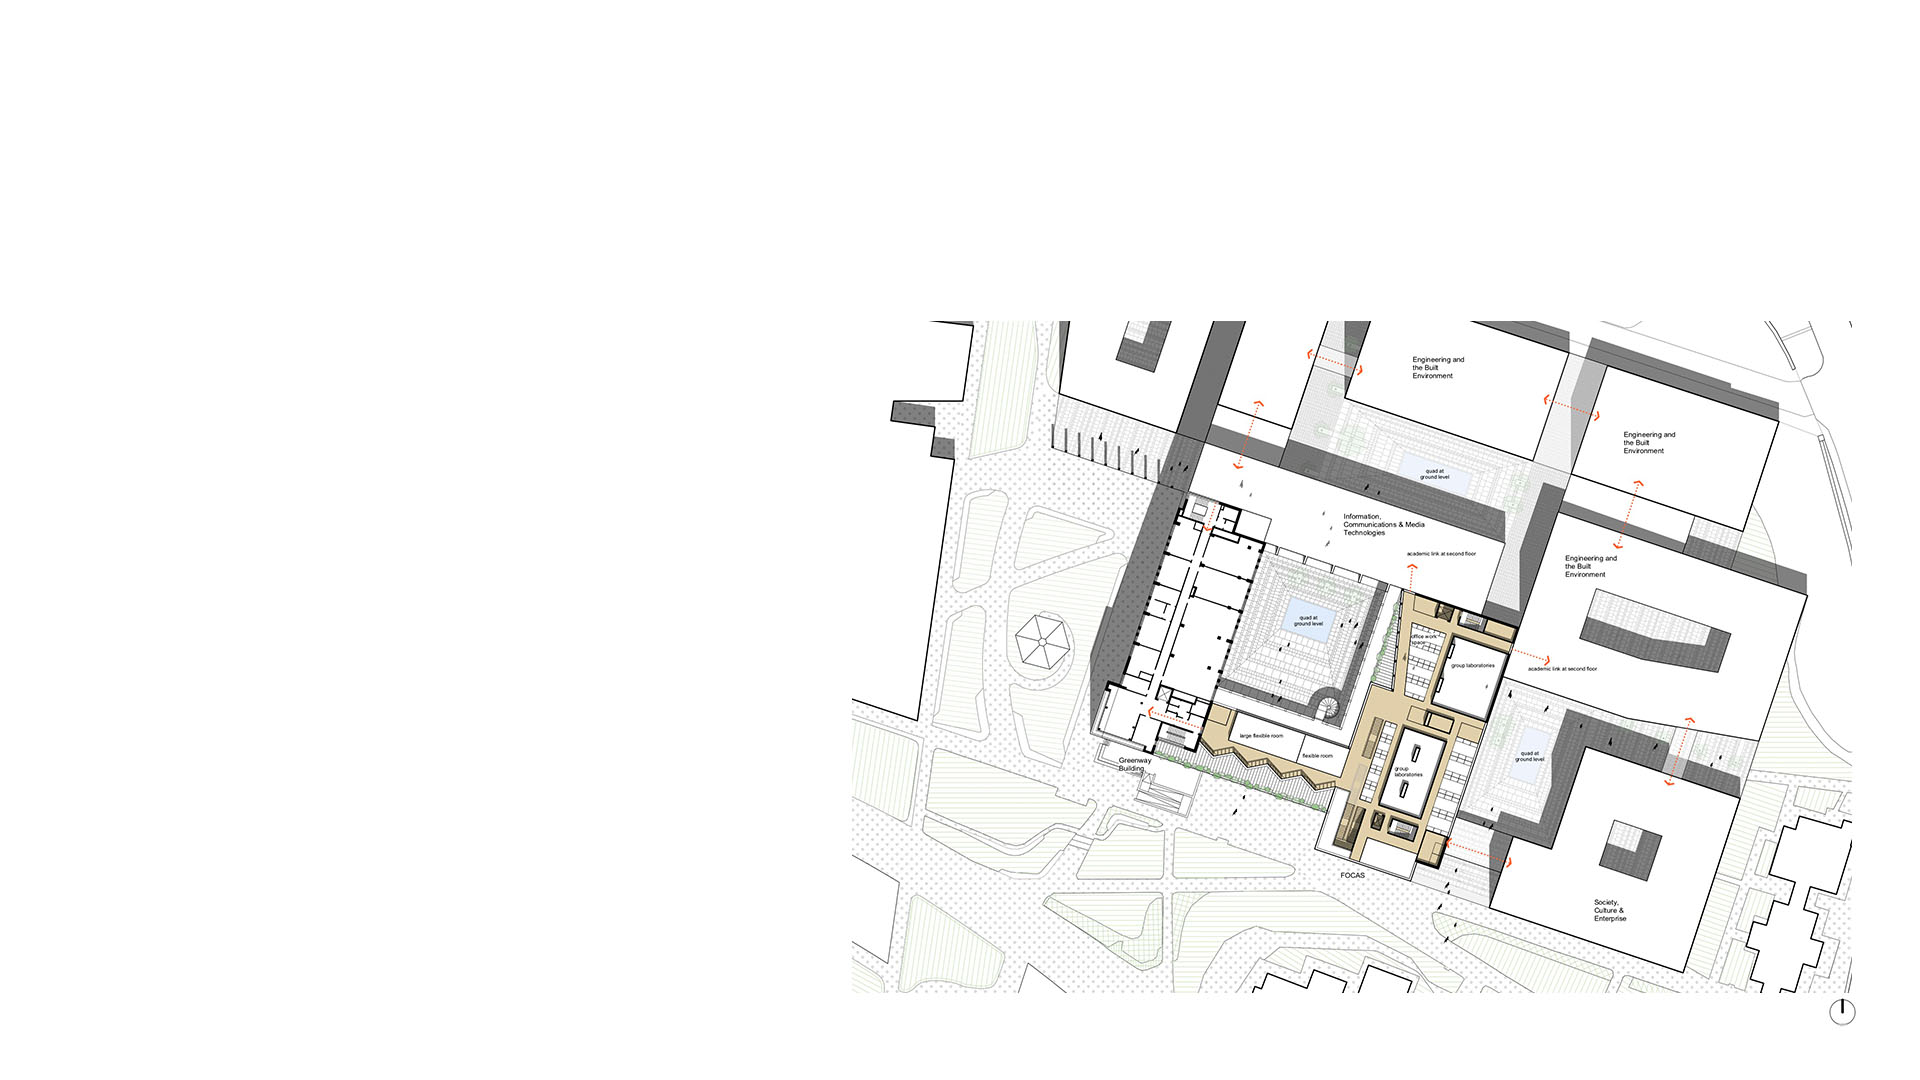 1st floor plan of proposals for new FOCAS building at Technical University Dublin by Keith Williams Architects